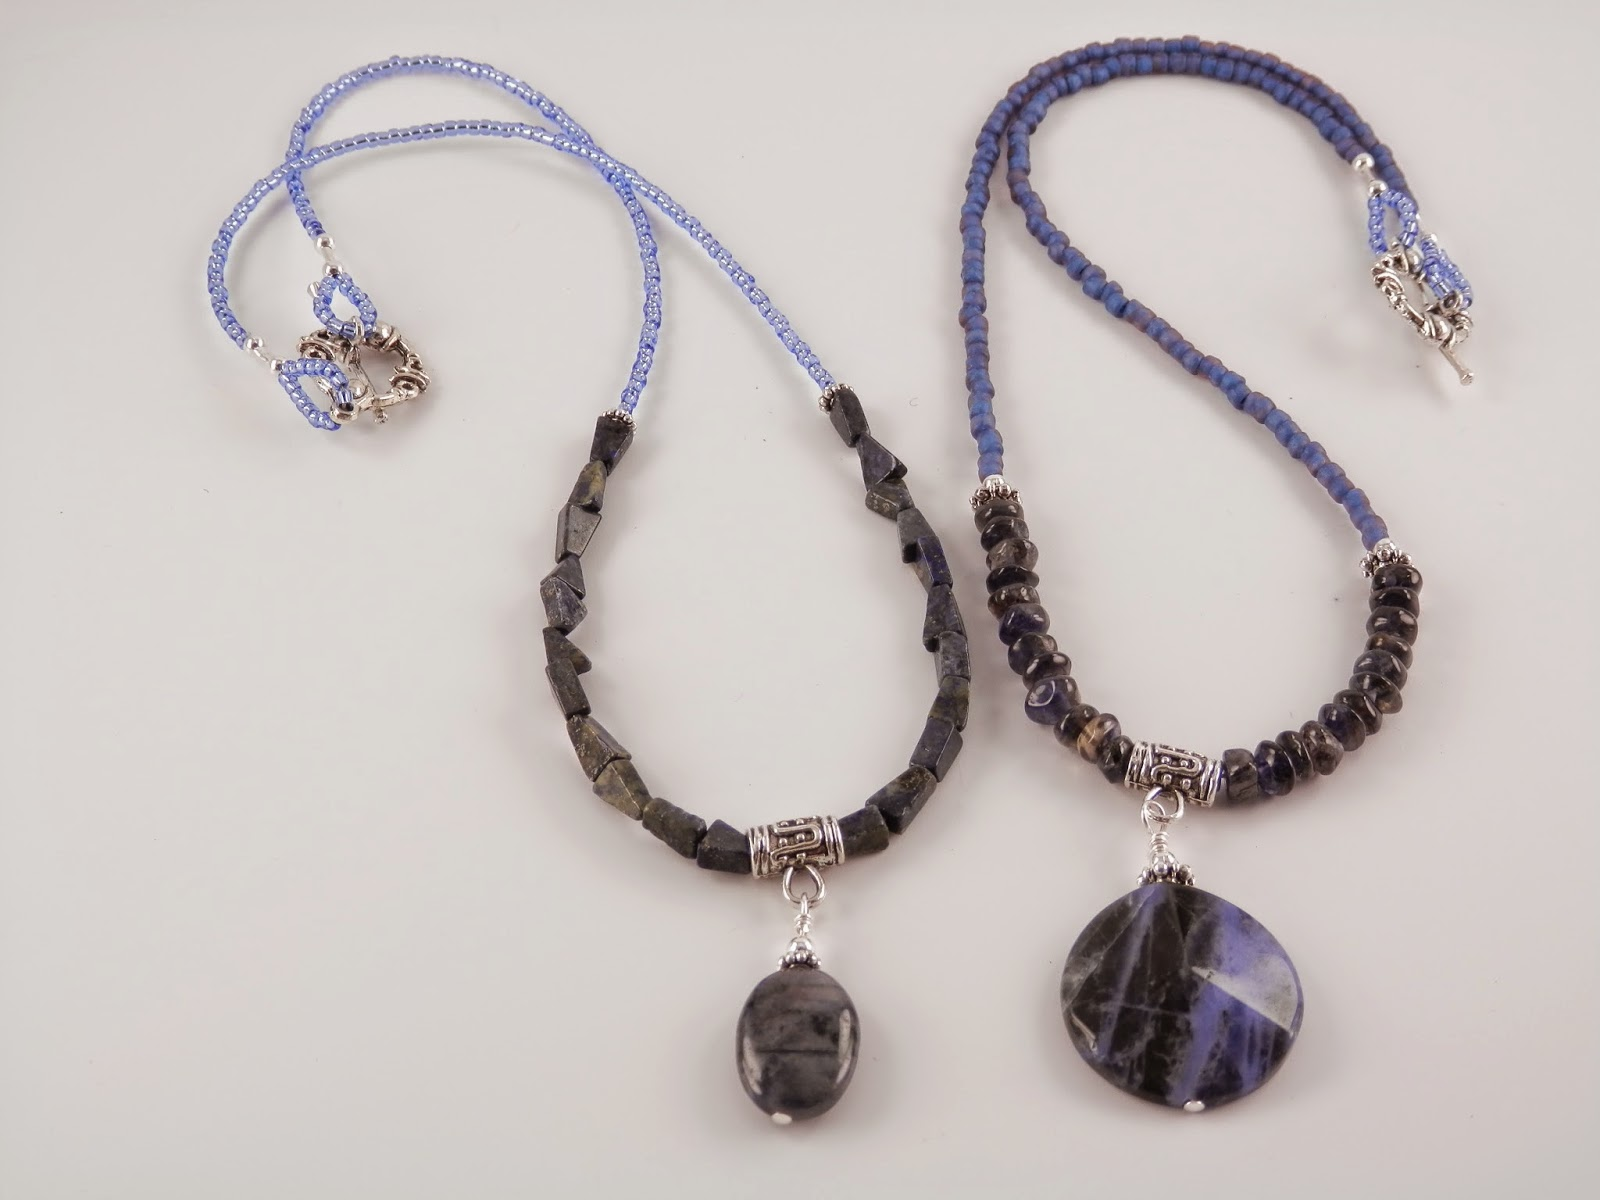 products nk blk blockette amed dawes amethyst jennifer iolite design baguette io necklace